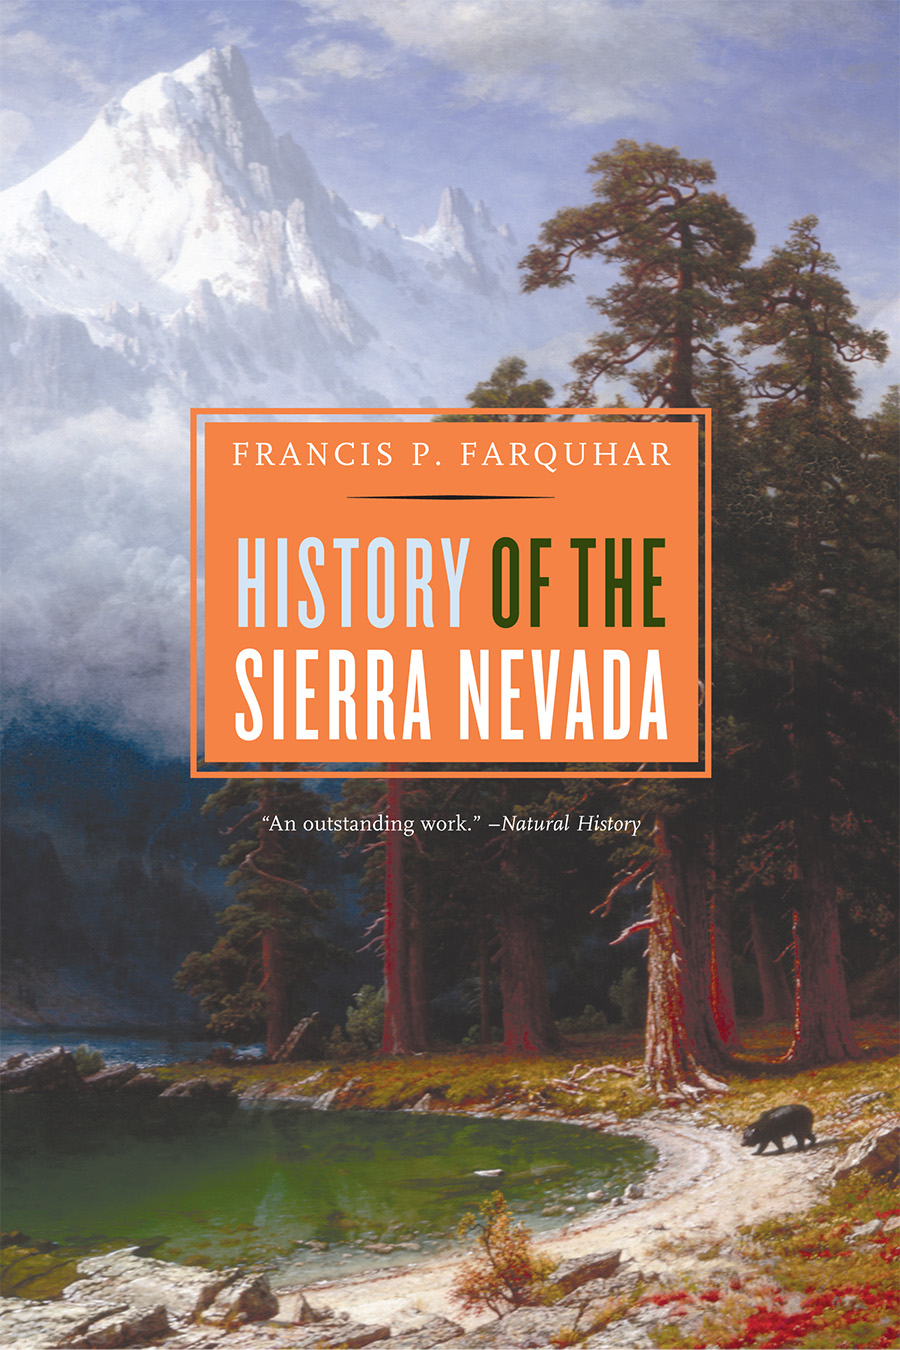 history-of-the-sierra-nevada.jpg